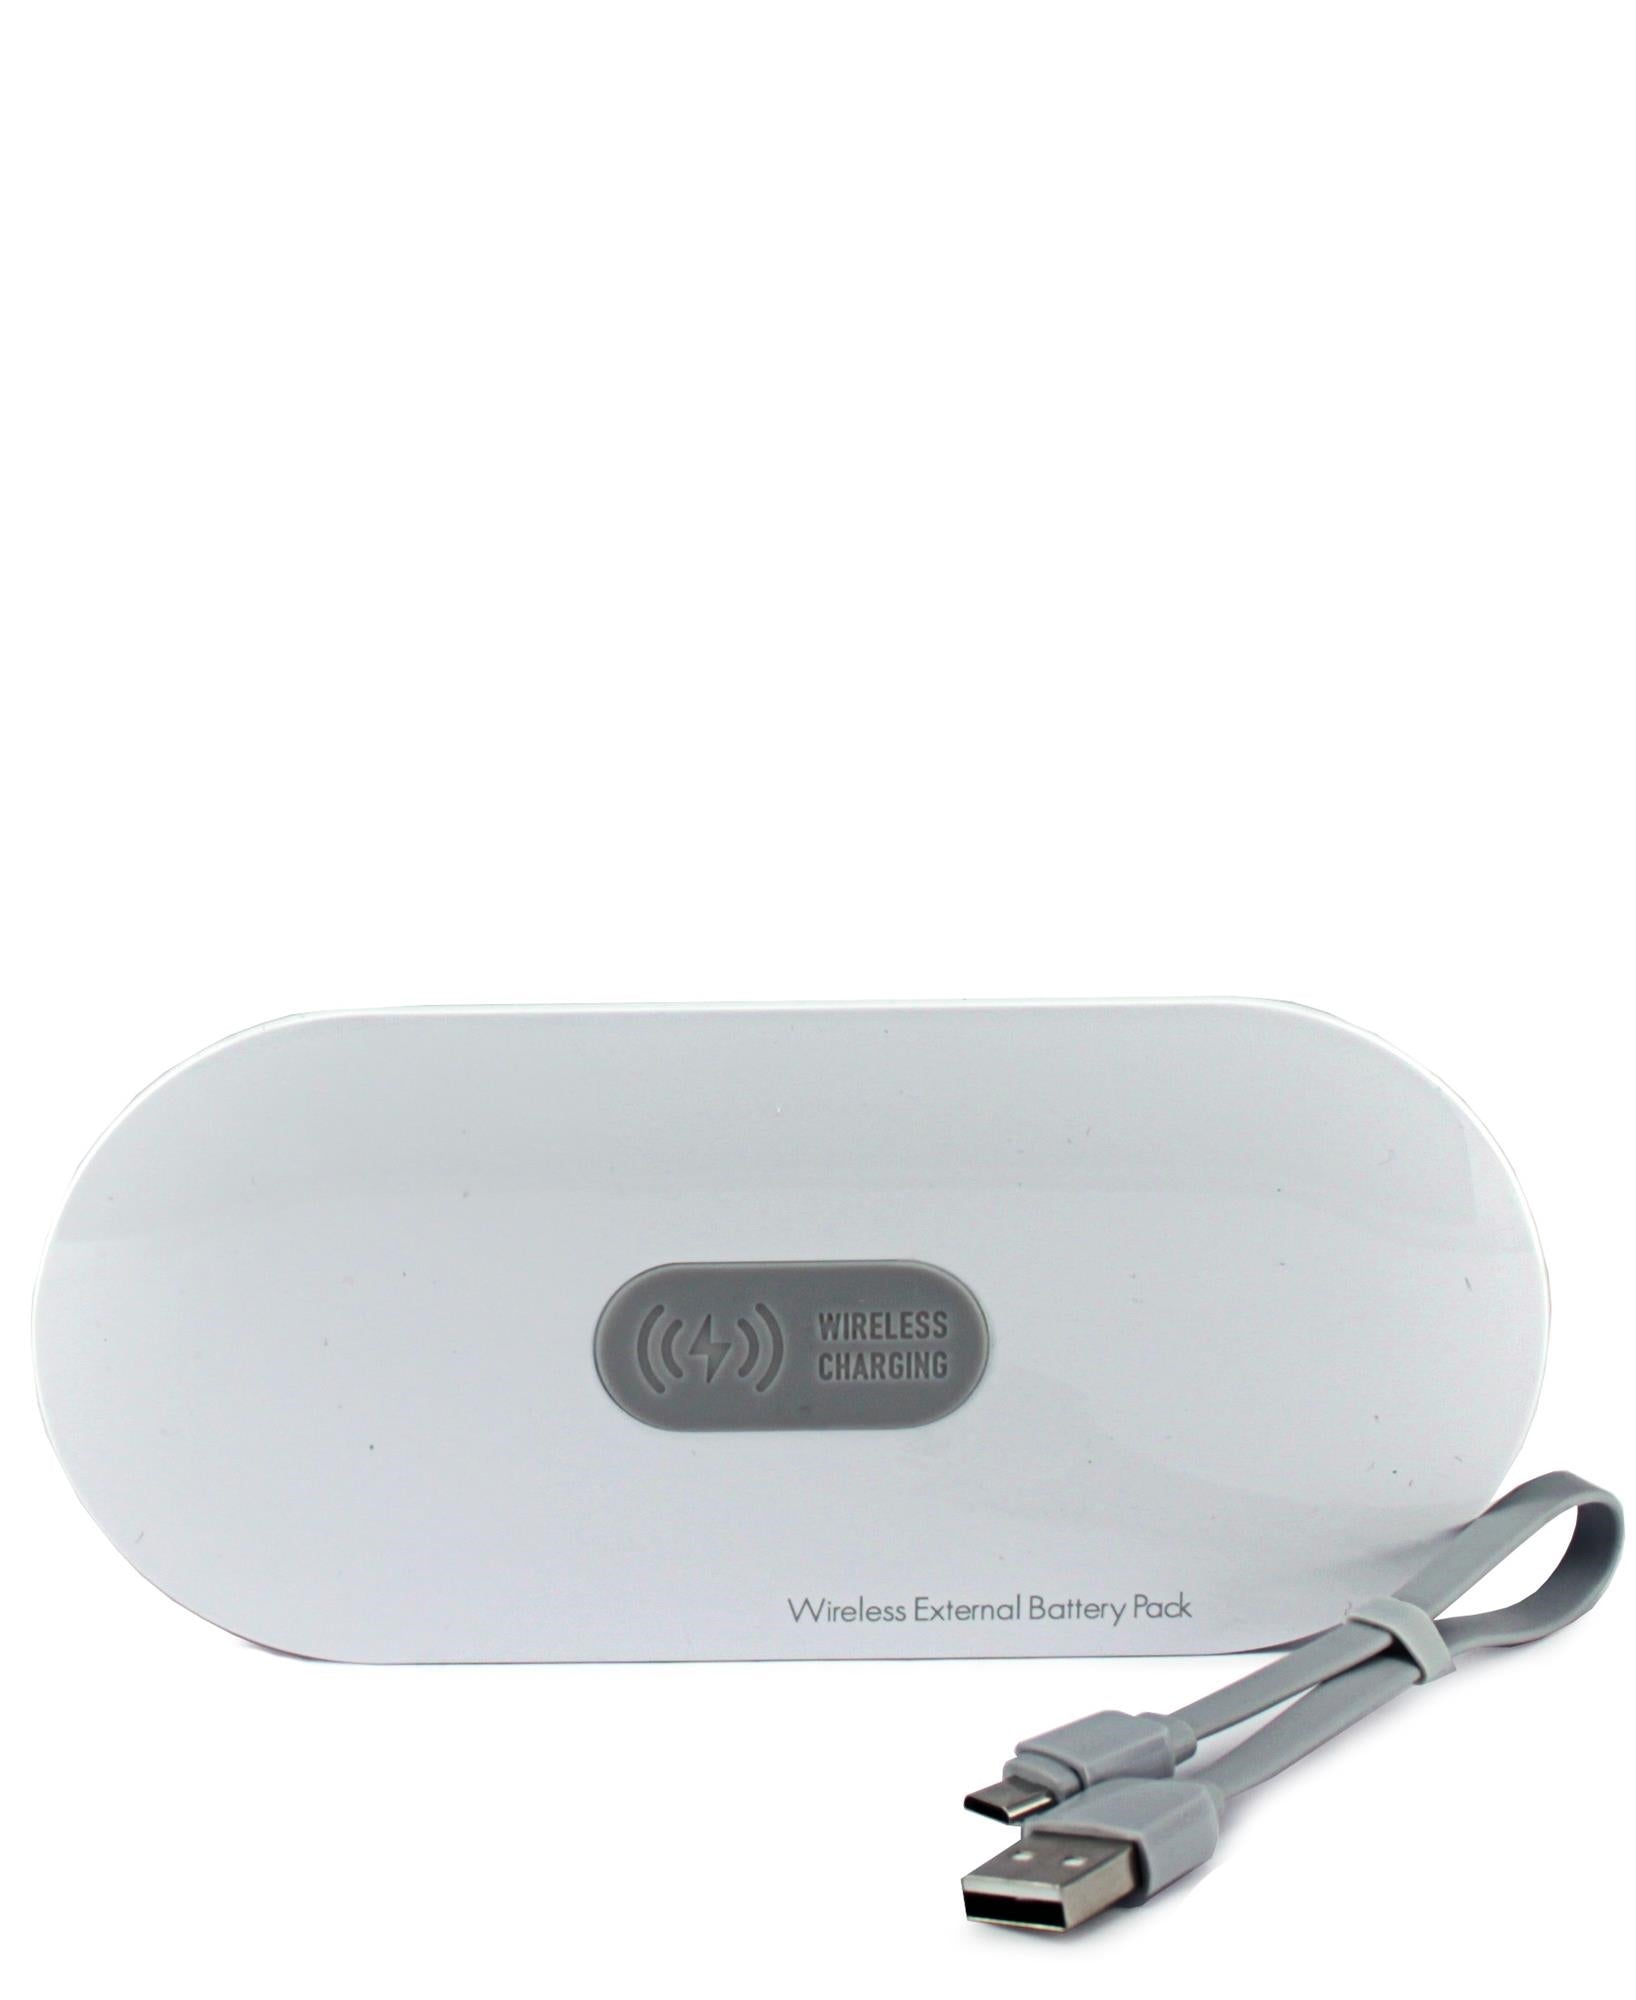 10000mAh Power Bank with Wireless Battery Pack - White